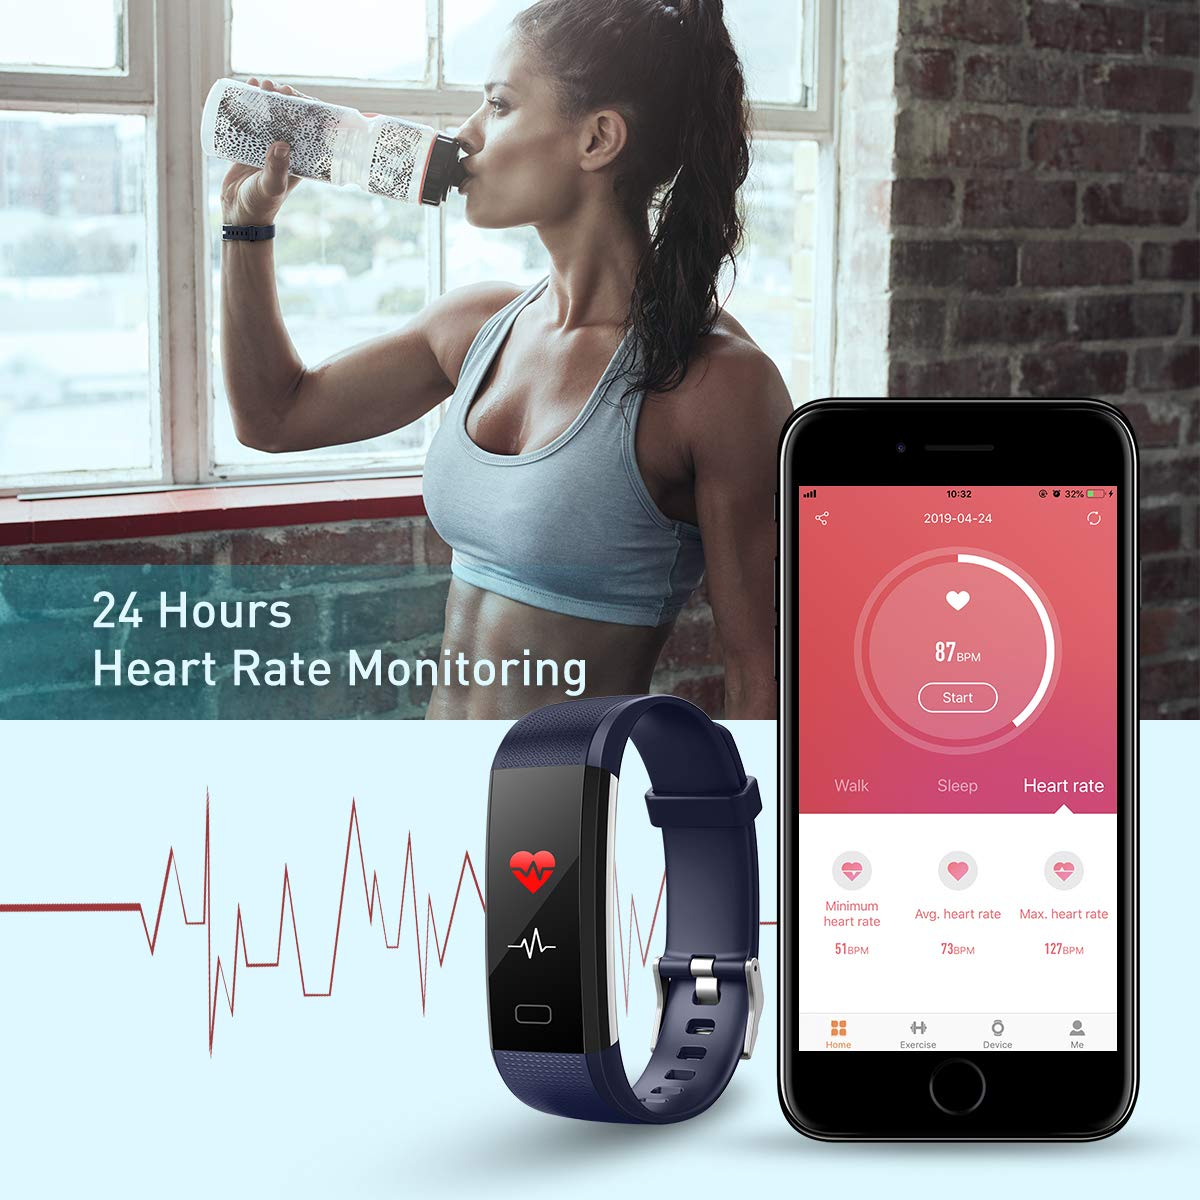 GINOZO Fitness Tracker, Activity Tracker Watch with Heart Rate Monitor, Pedometer IP68 Waterproof with Calorie Counter and Message Notification